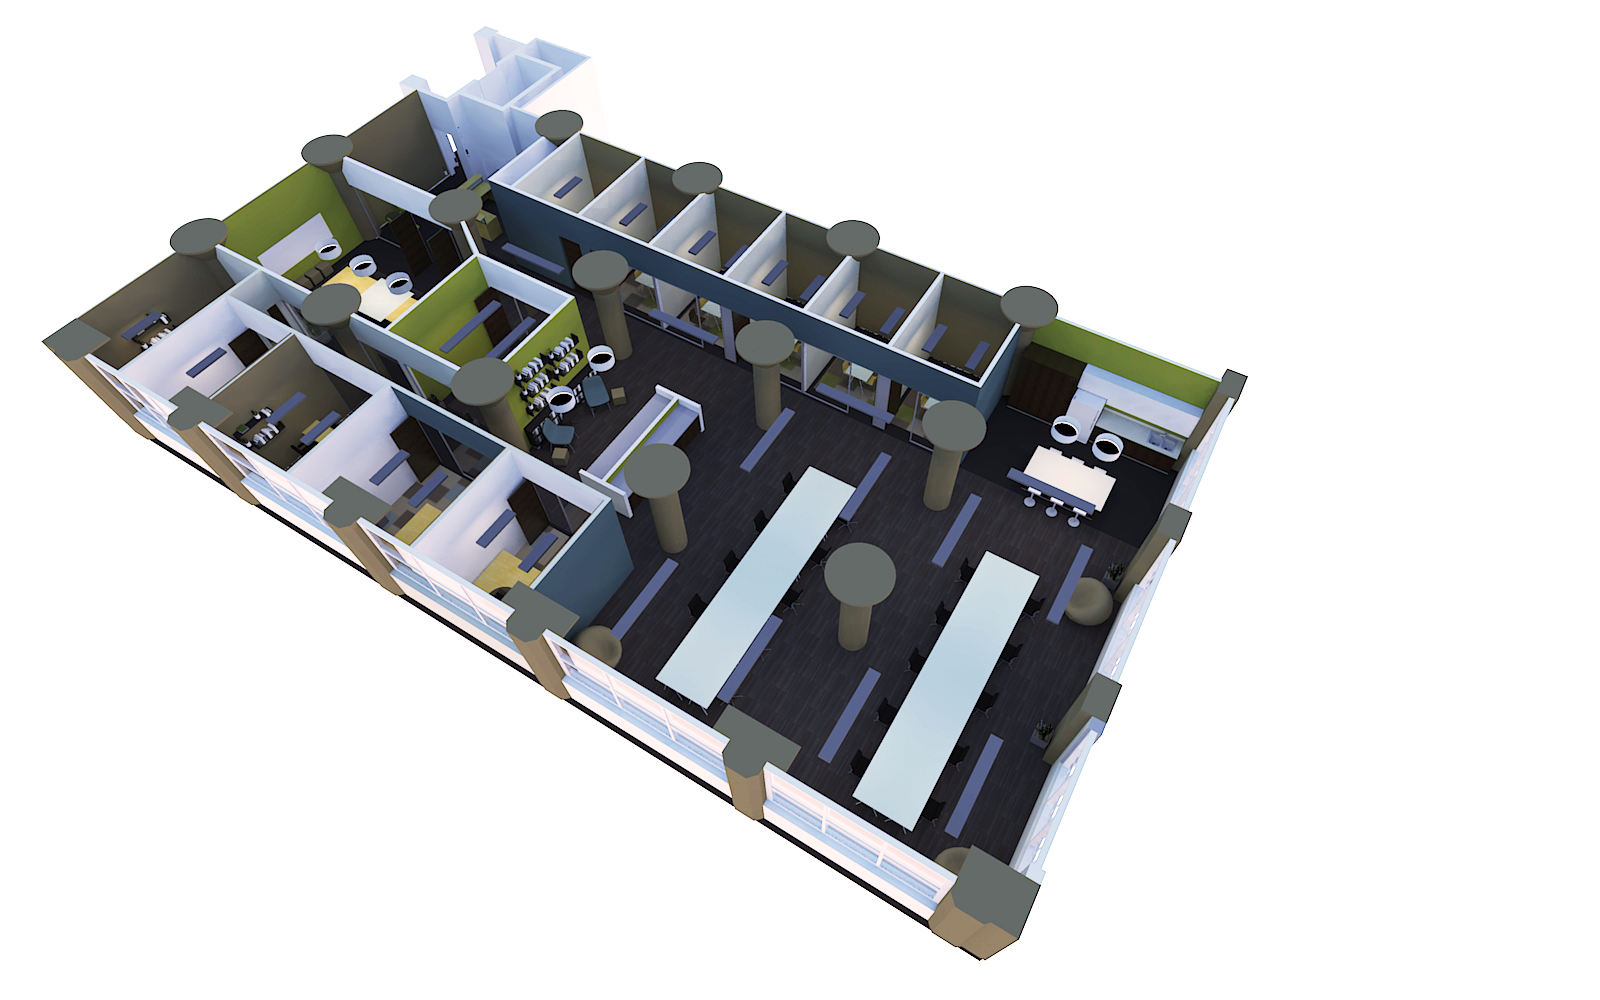 2011-06-01_1116_3D Top View.png